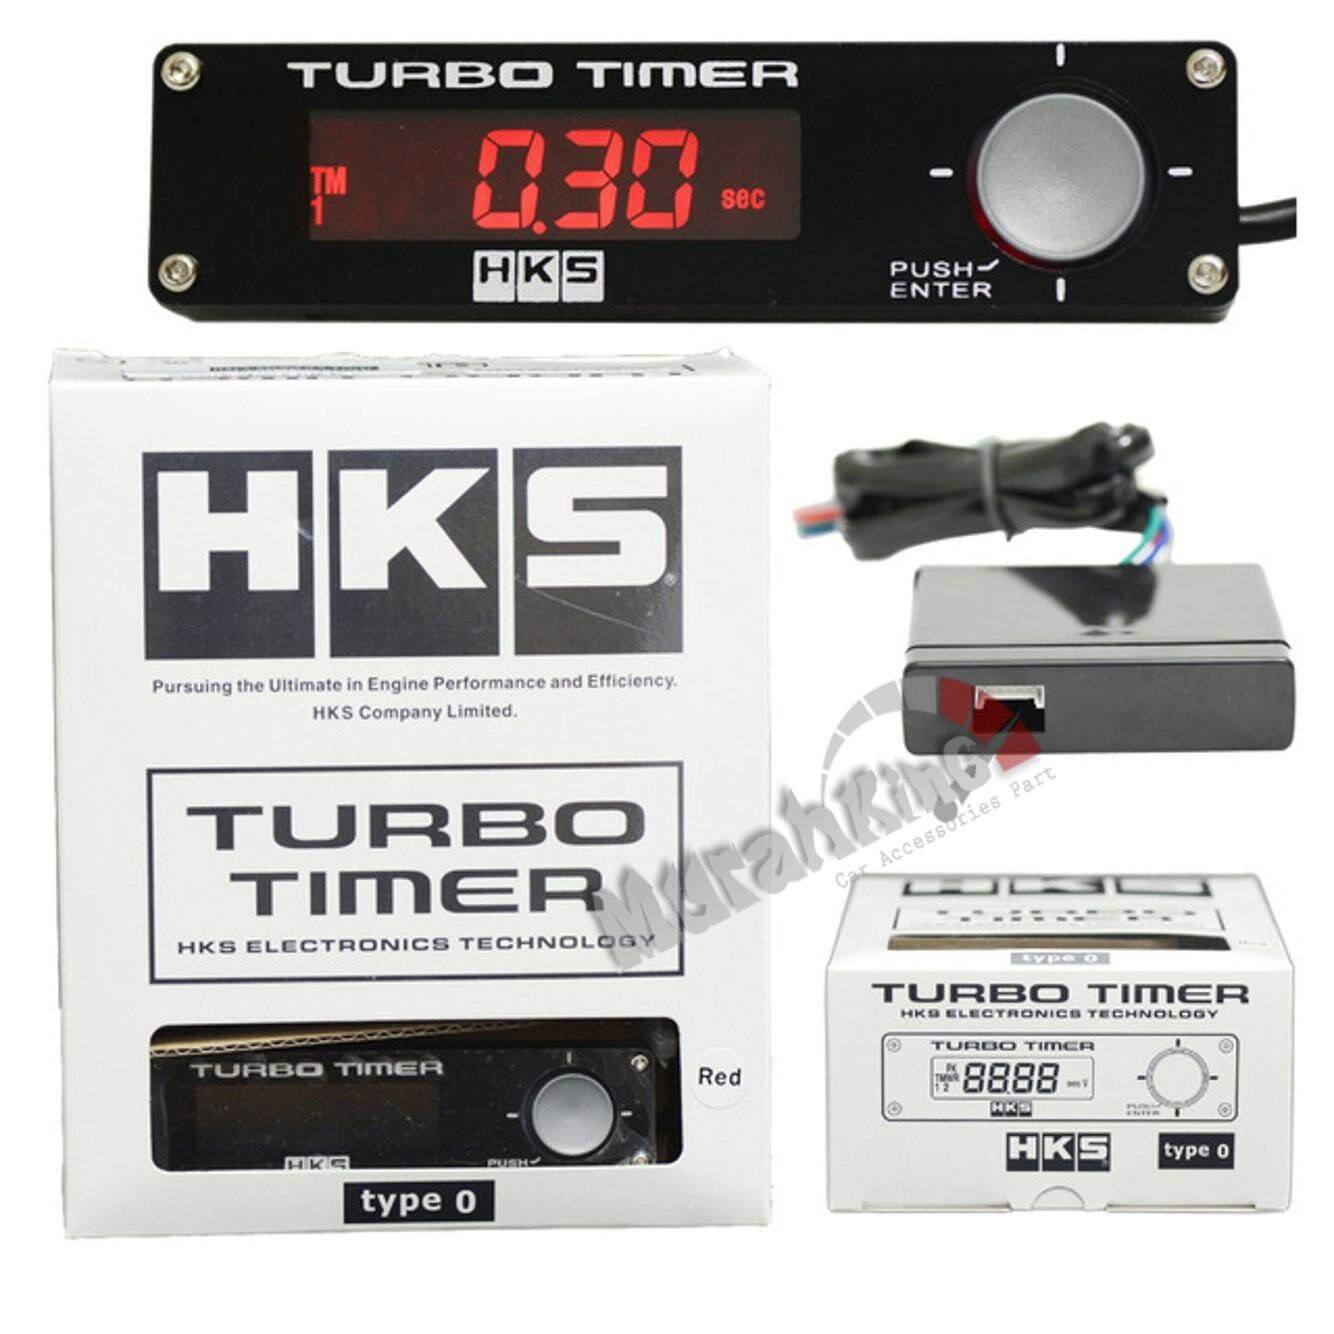 Outstanding Apexi Turbo Timer Wiring Diagram Photo - Wiring Diagram ...